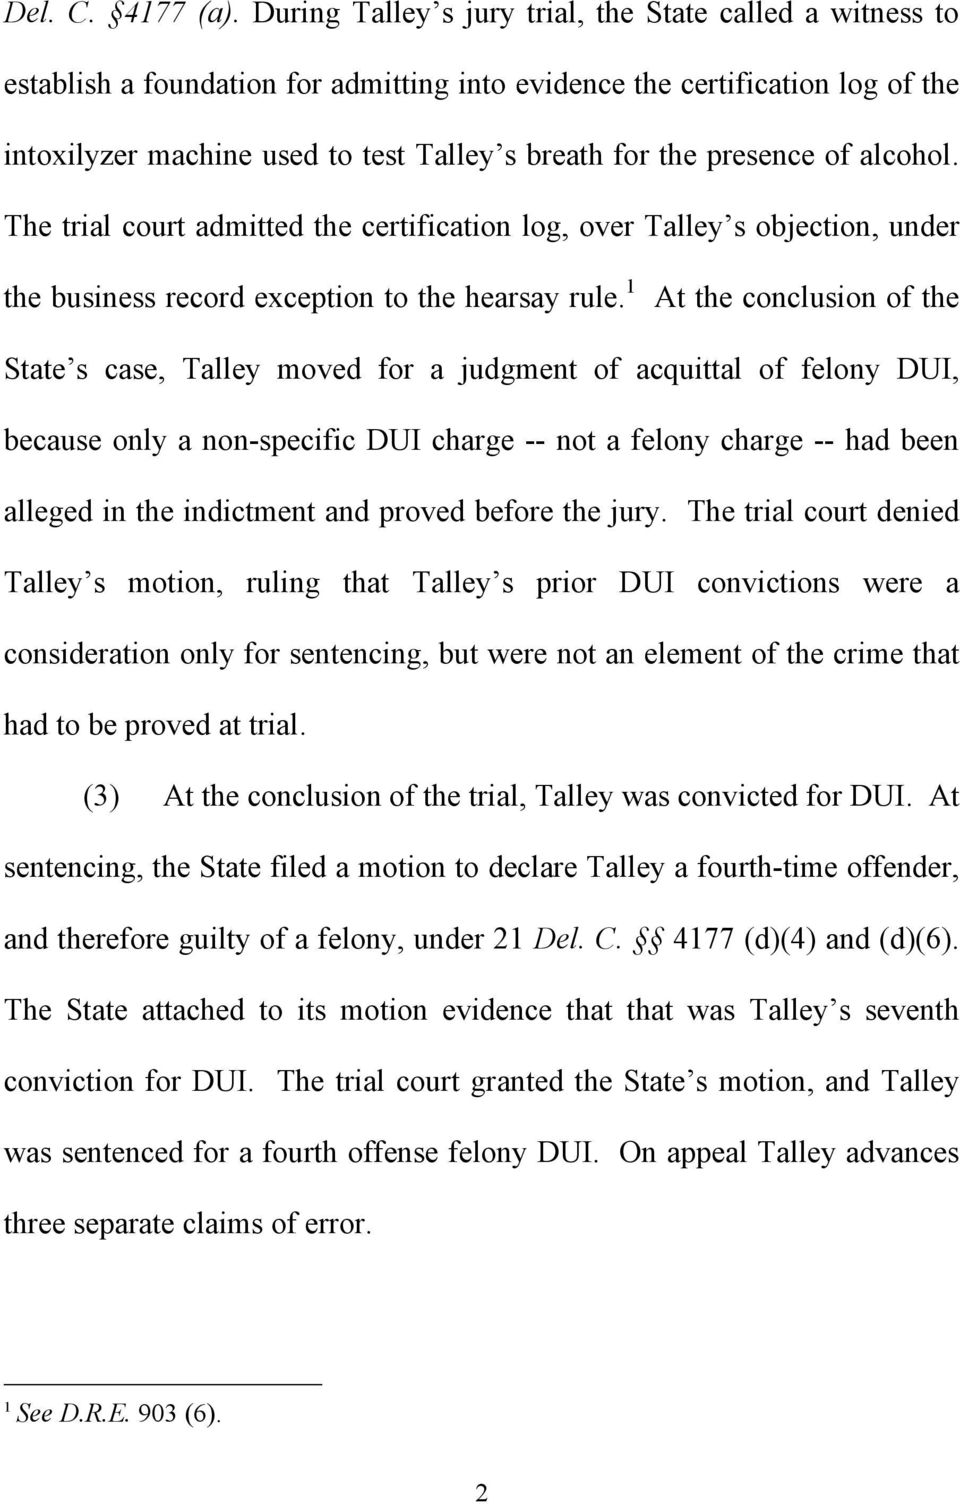 presence of alcohol. The trial court admitted the certification log, over Talley s objection, under the business record exception to the hearsay rule.